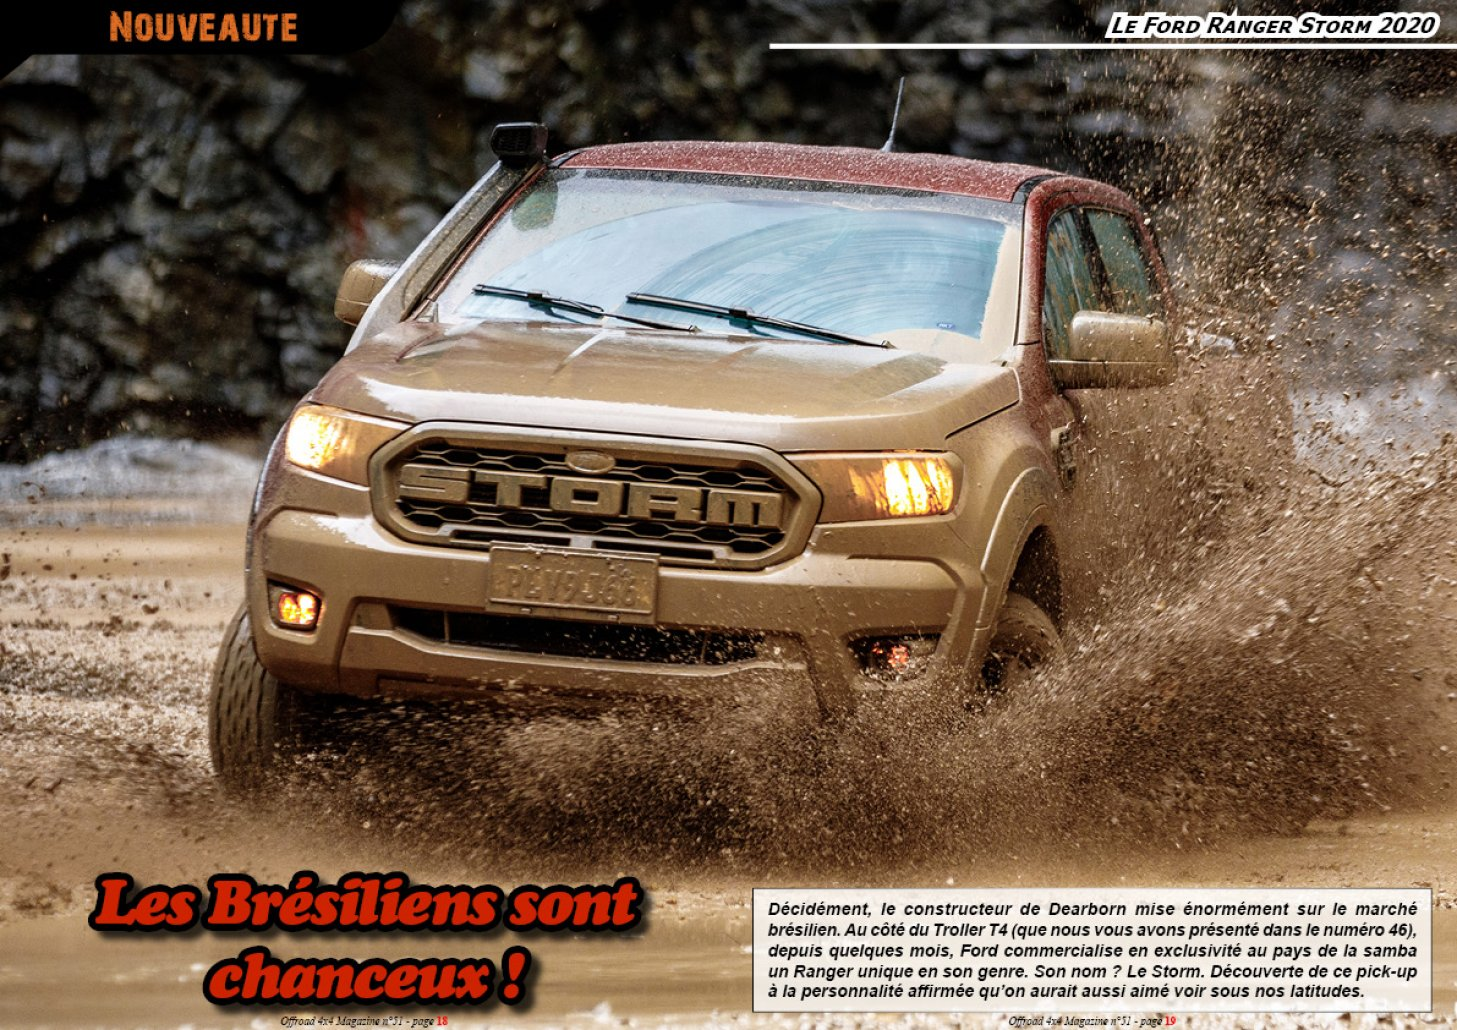 Le Ford Ranger Storm 2020